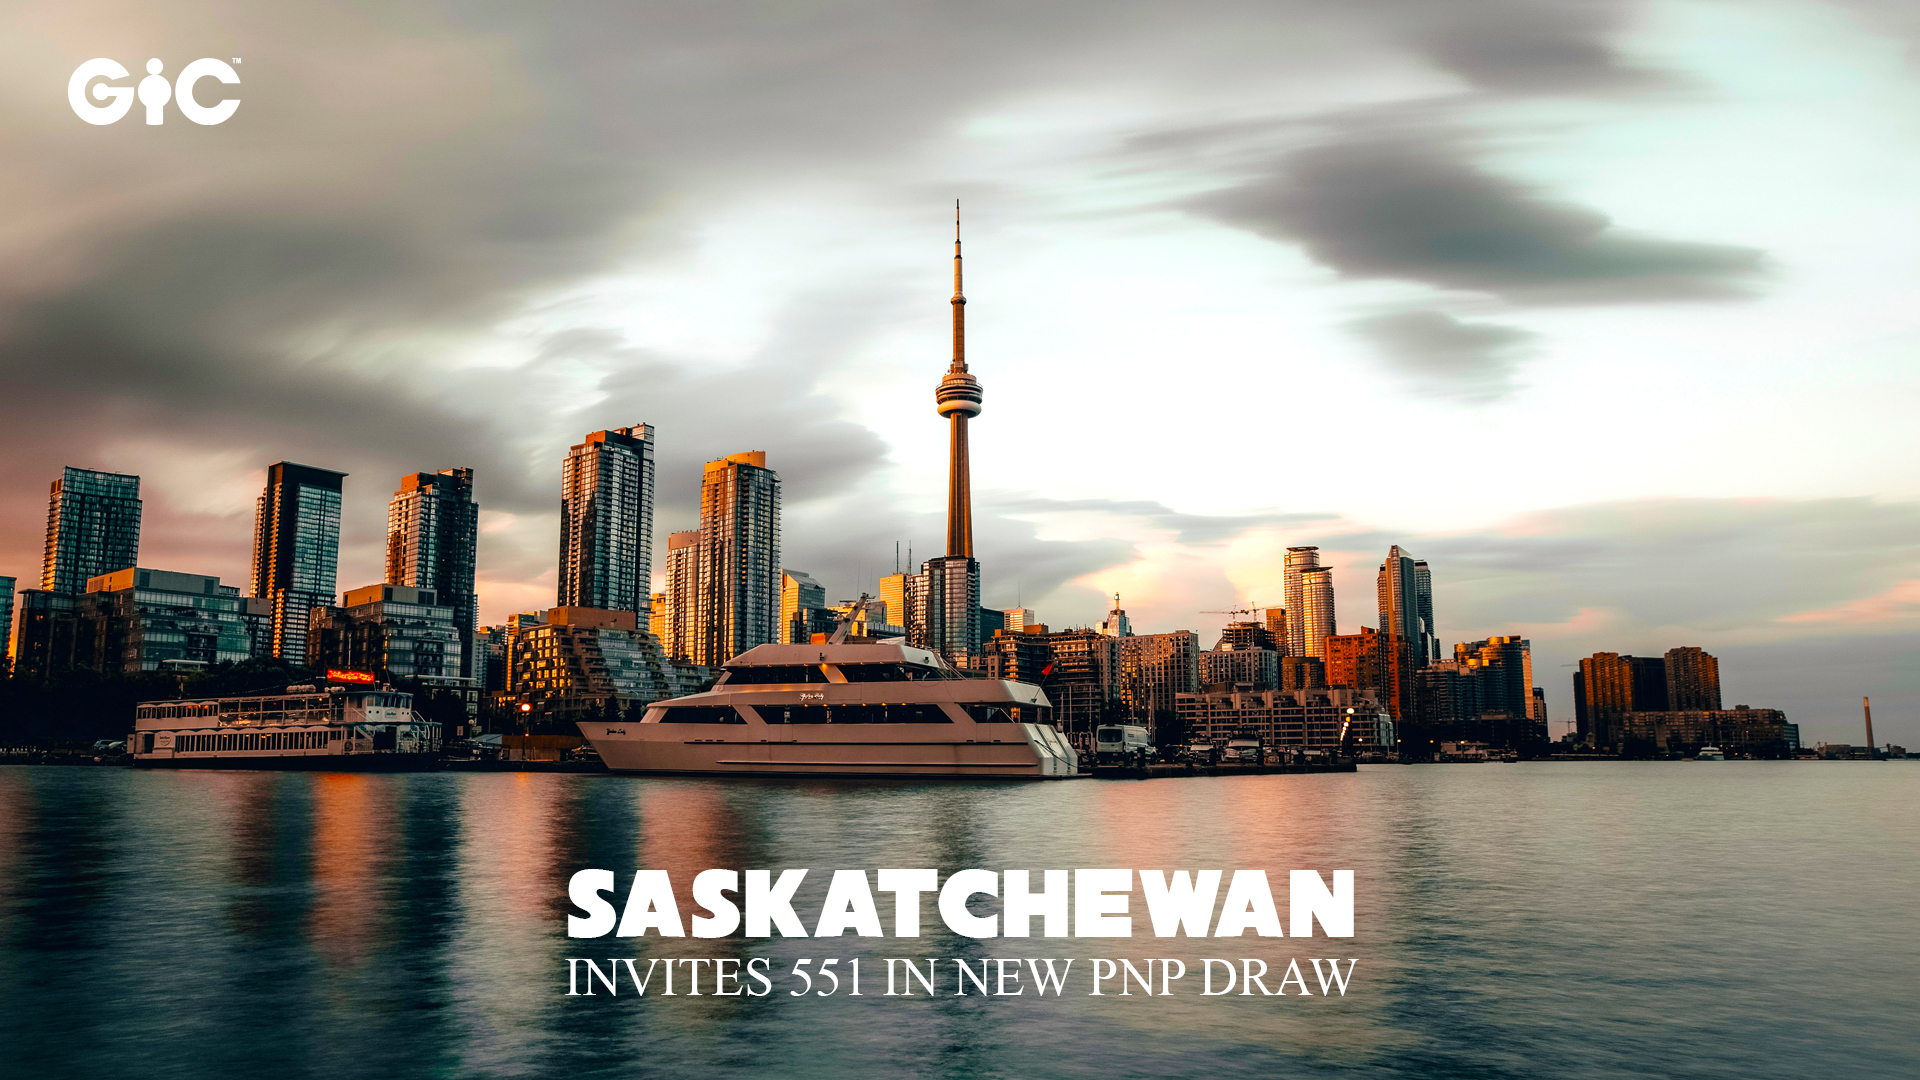 Saskatchewan invites 551 in new PNP draw